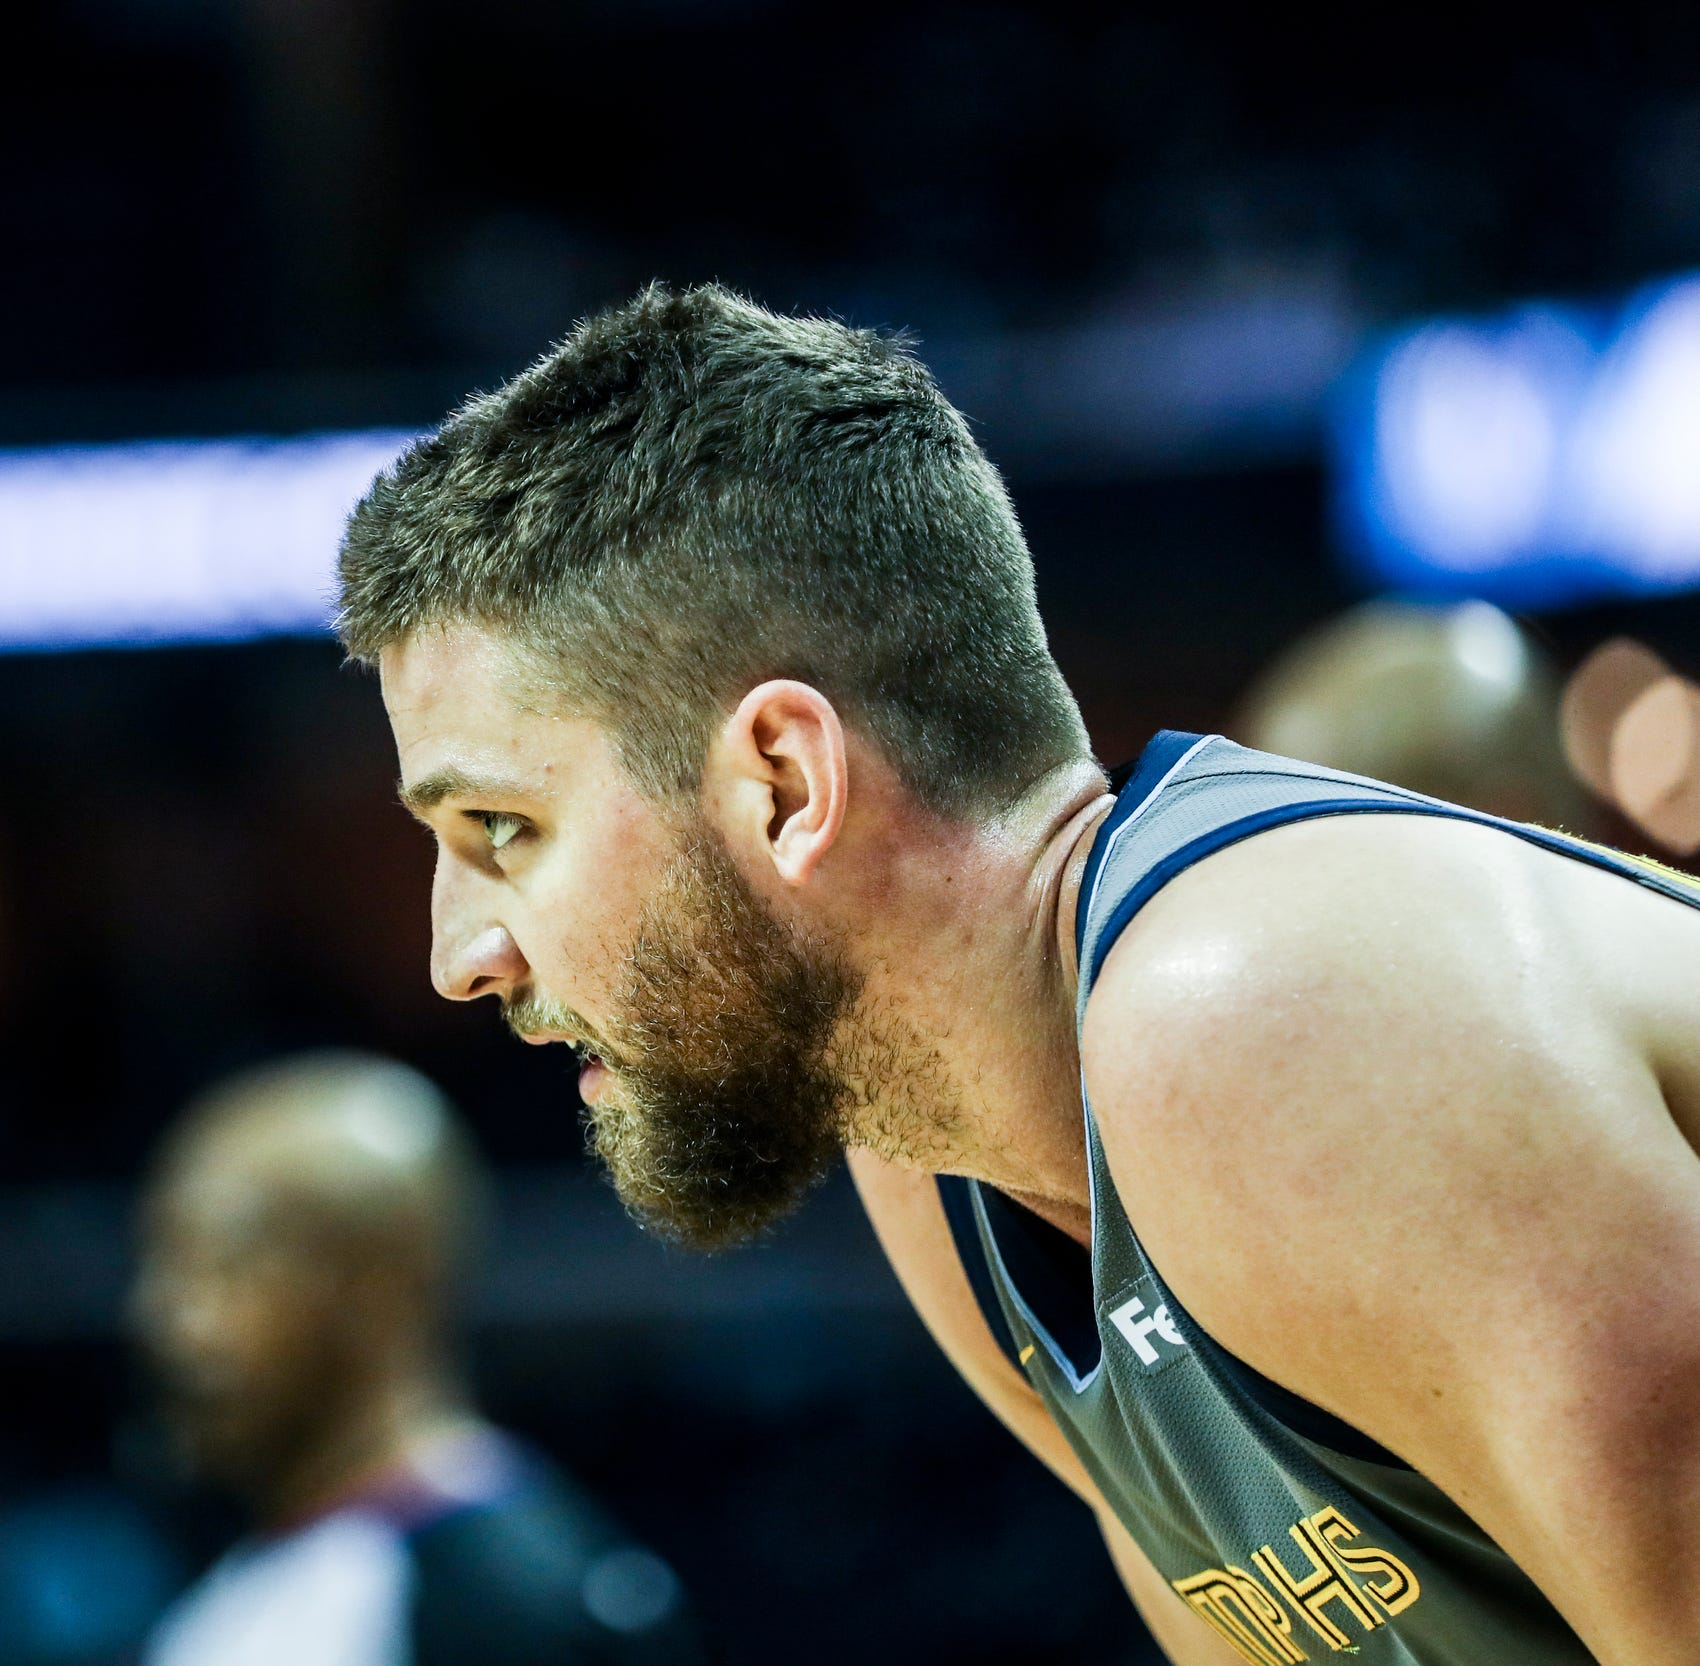 Will the Memphis Grizzlies trade Chandler Parsons after his respectable 2018-19 comeback?